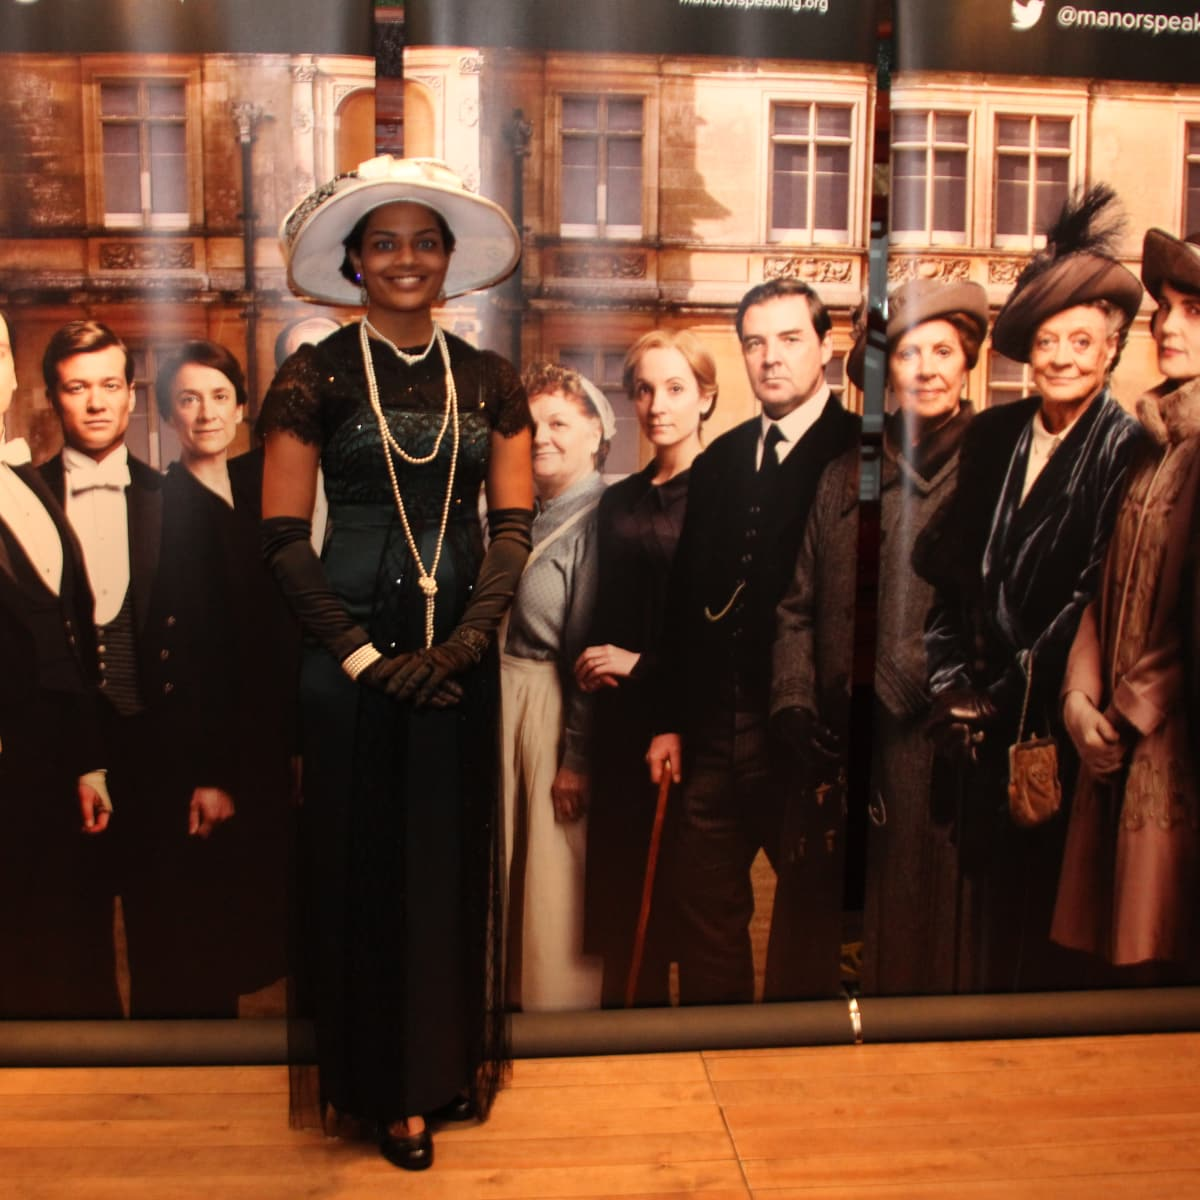 Sagirah Norris won first place for her Downton Abbey costume at sneak preview